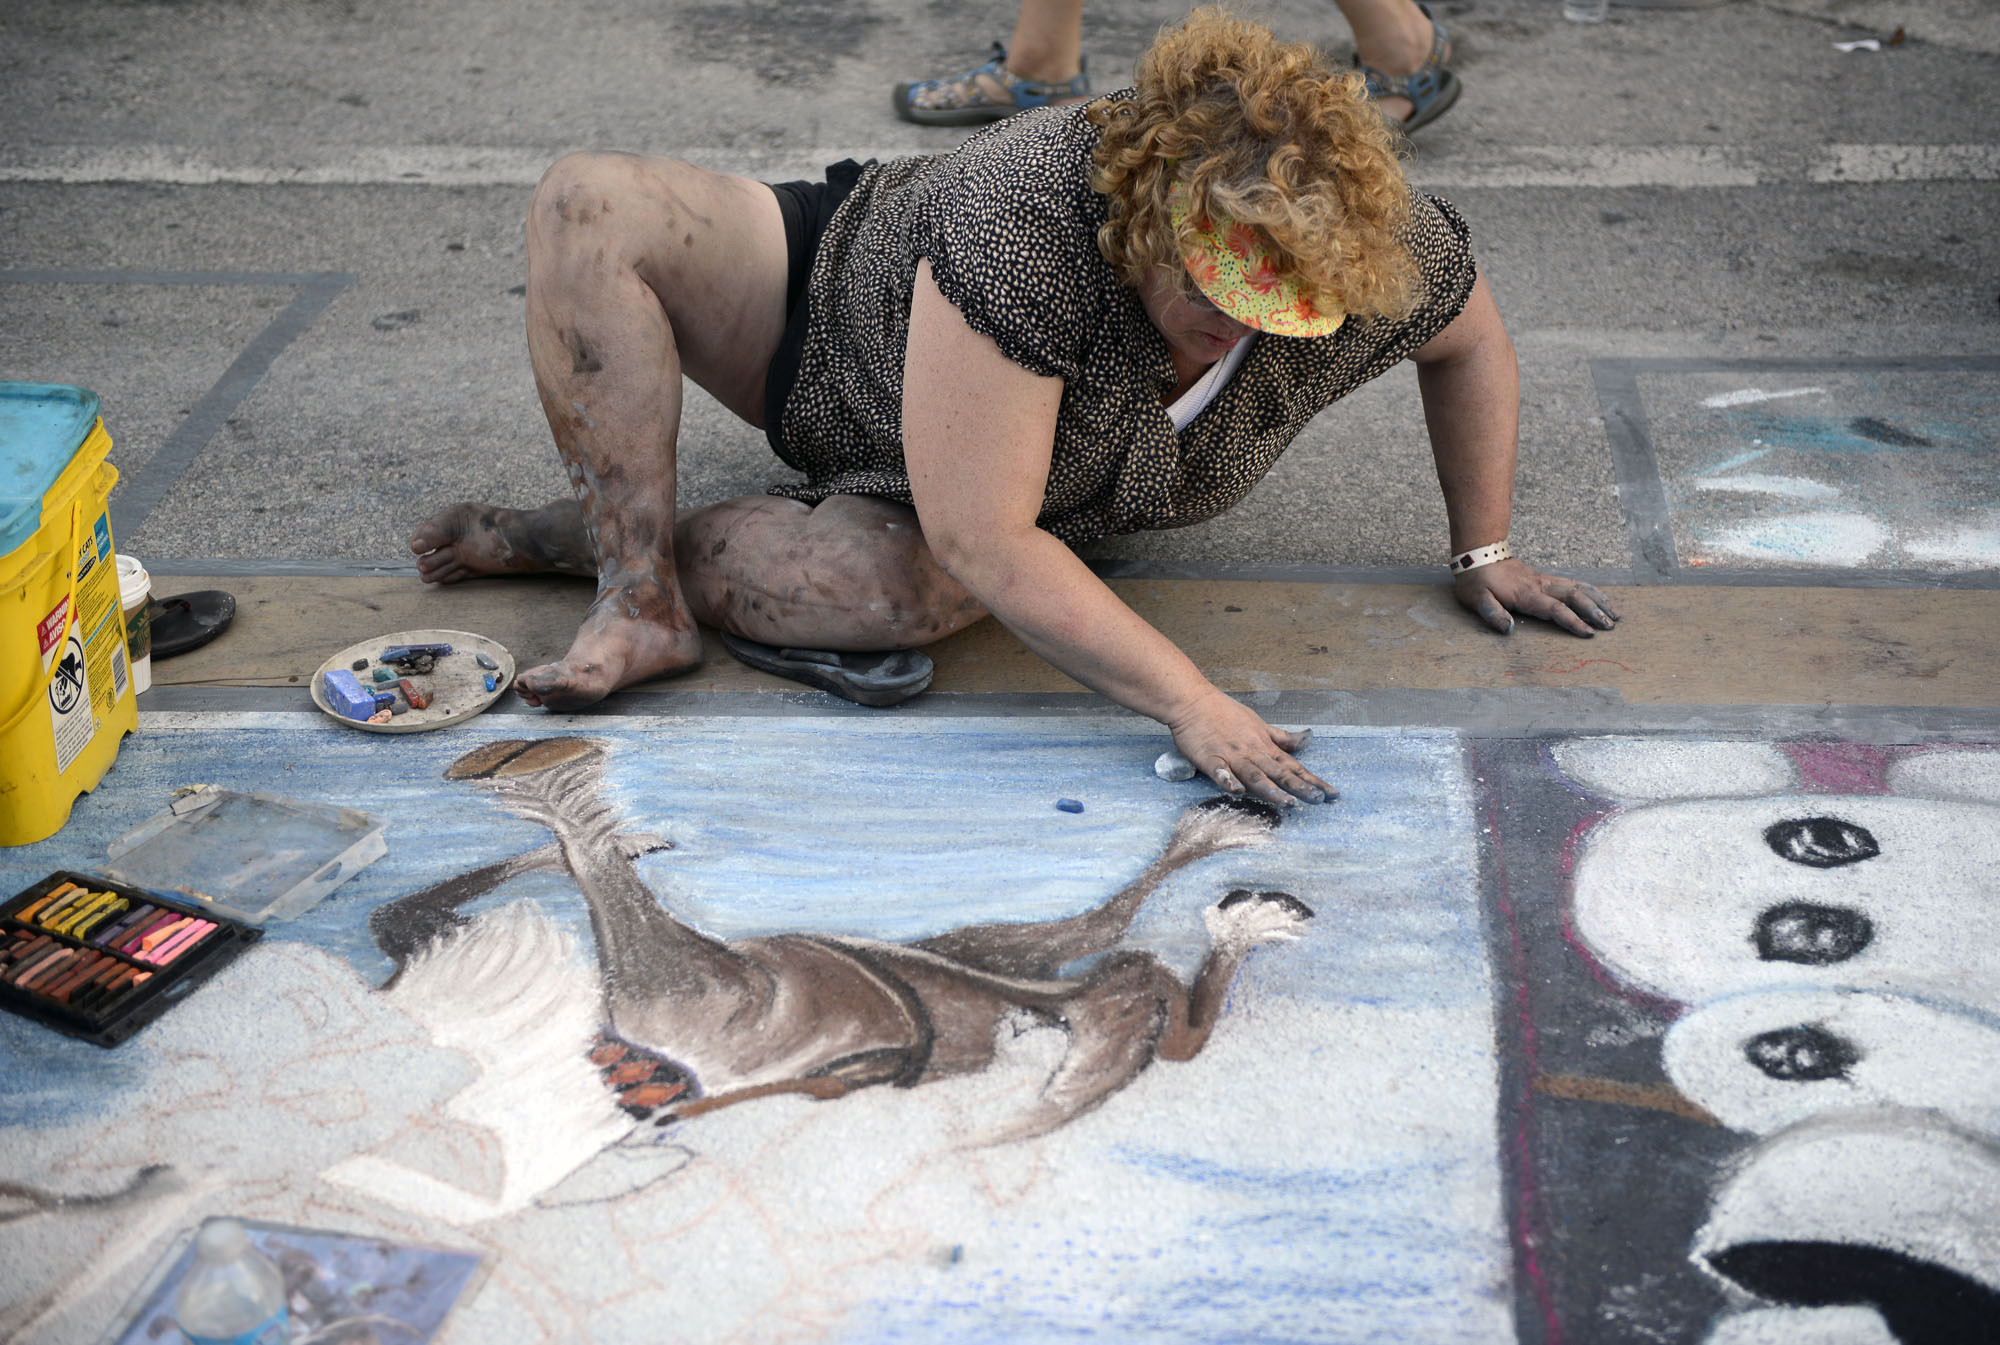 Lake Worth Street Painting Festival - Painting the streets